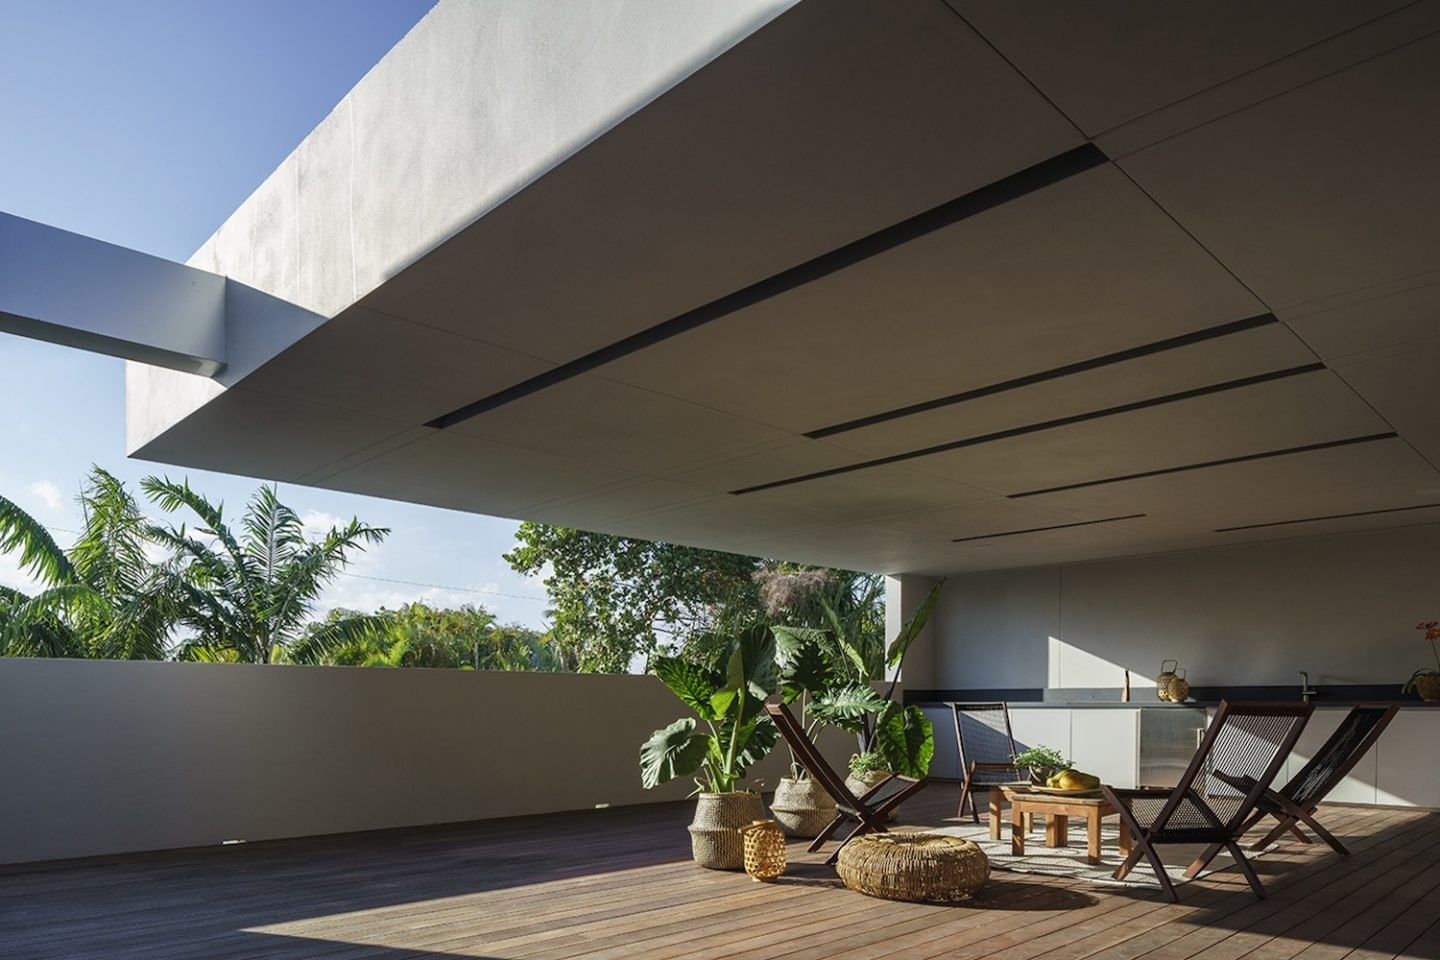 iGNANT_Architecture_Ron_Rojas_House_Rene_Gonzalez_Architect07